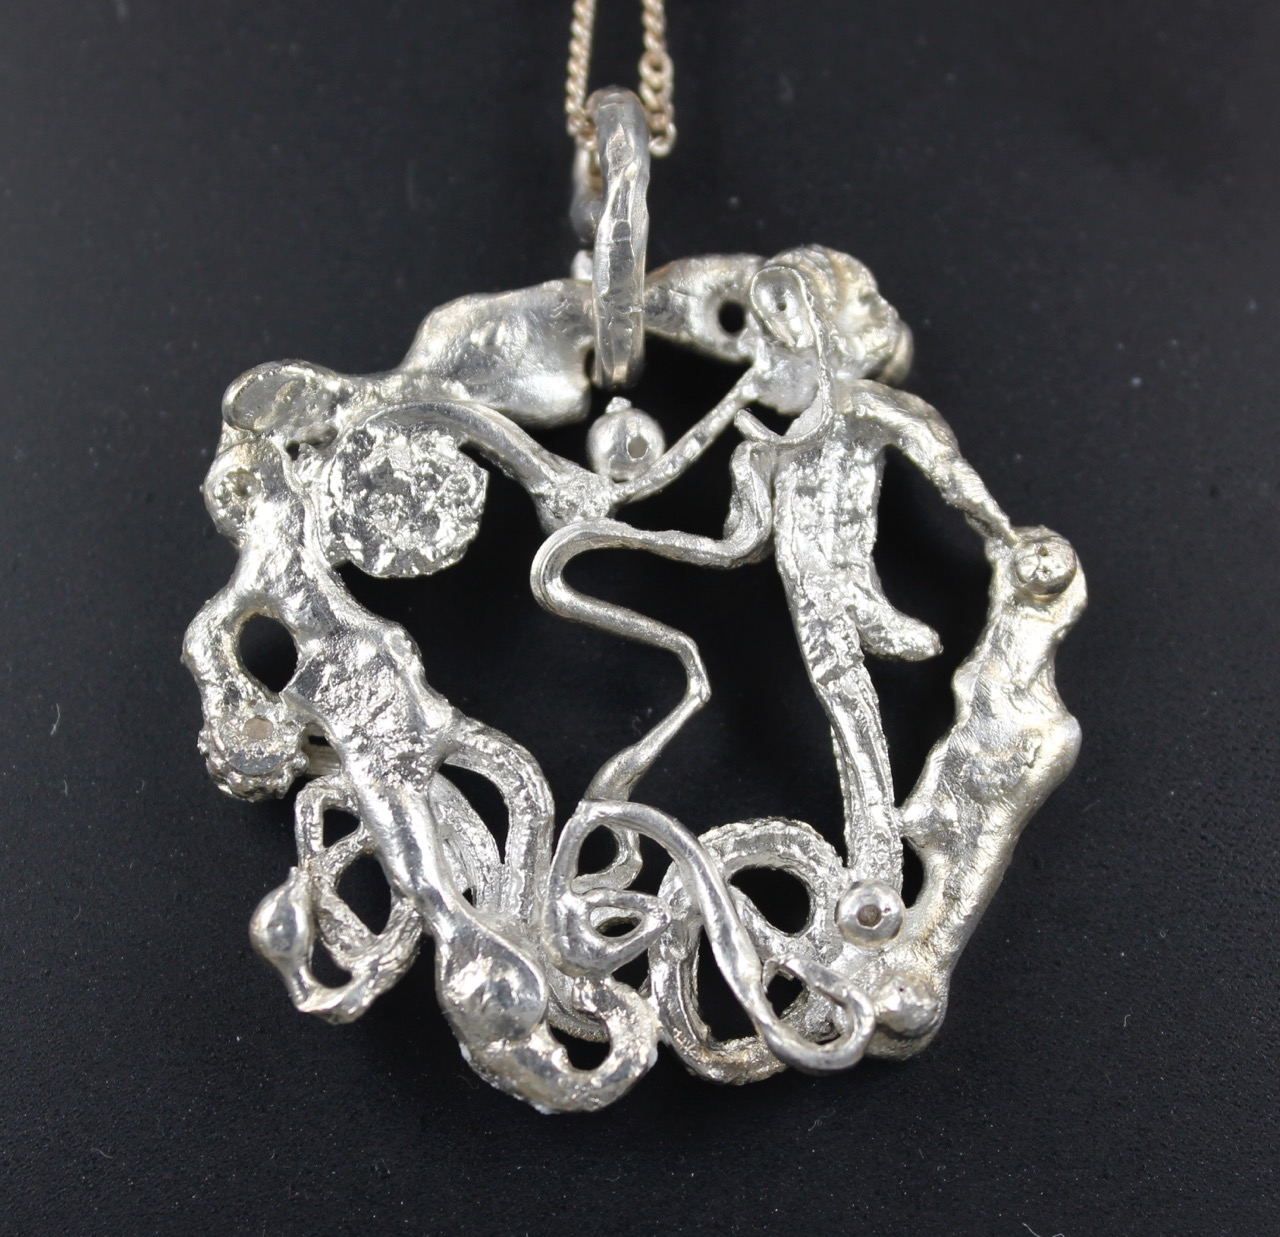 Silver 925 - Sold